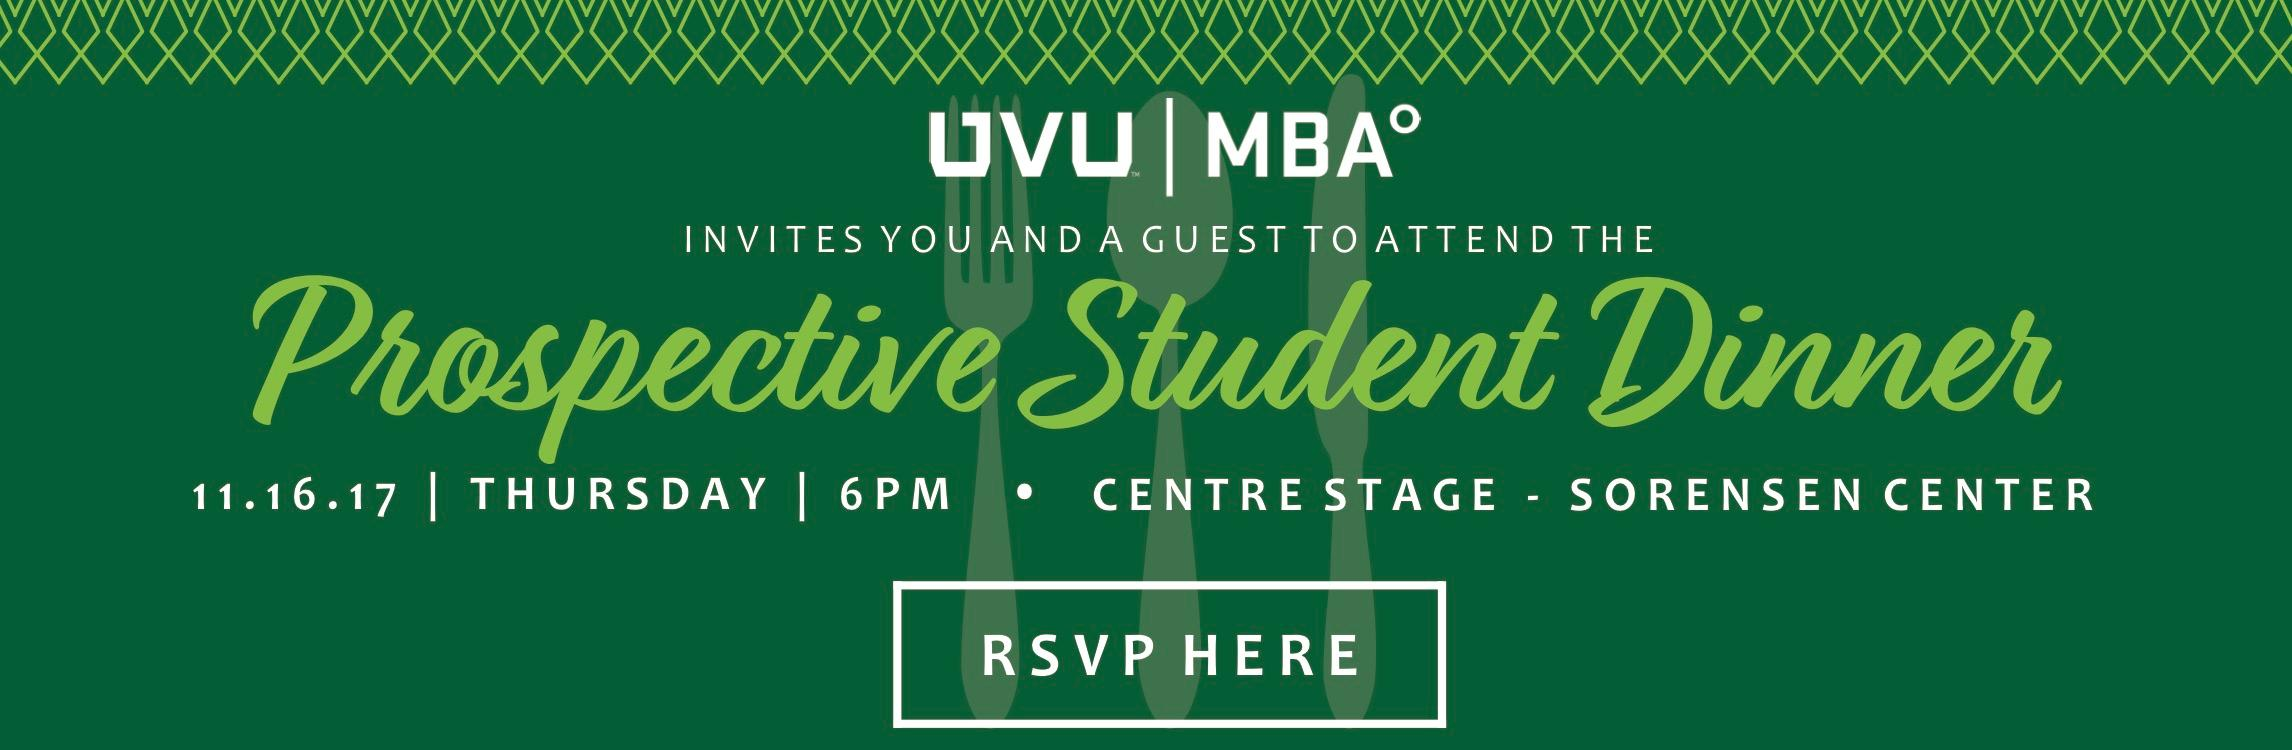 Prospective students should RVSP and attend the Prospective Student Dinner